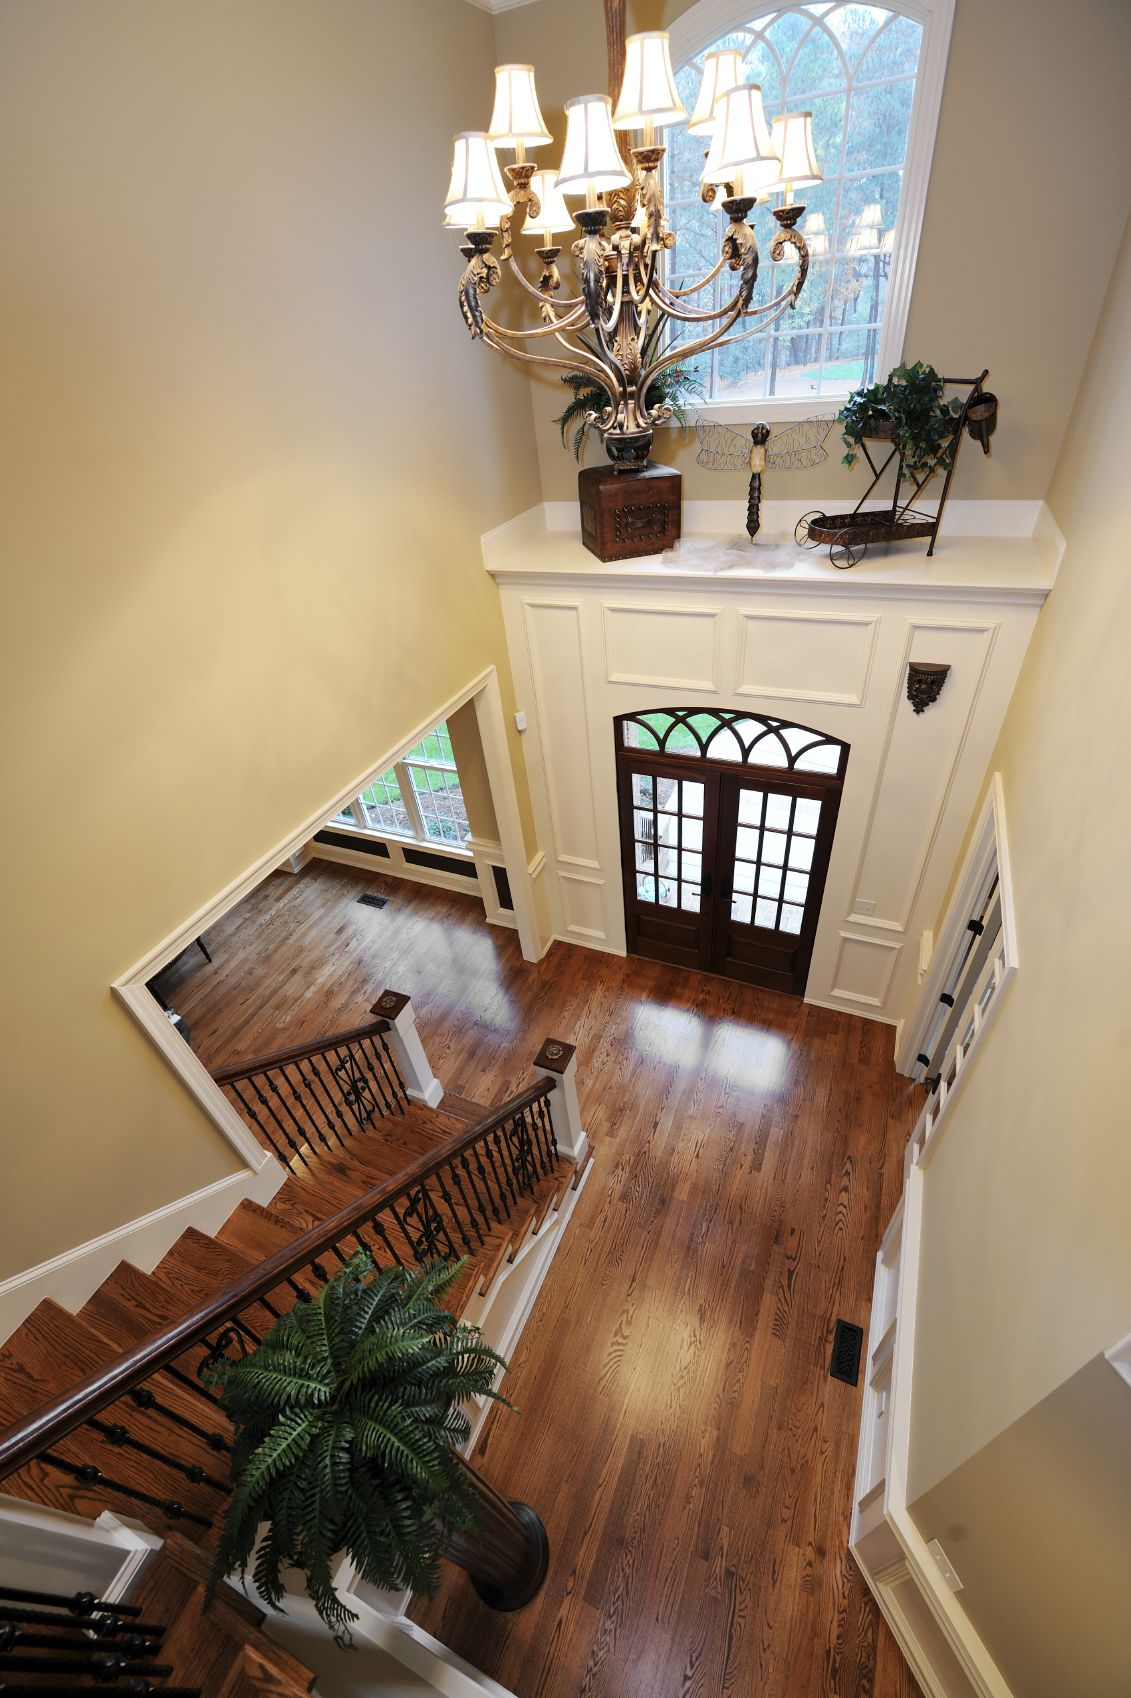 A view of the above foyer from the top of the staircase landing, showing the shelf above the doors, the large light fixture, and the fern topping the dark column.